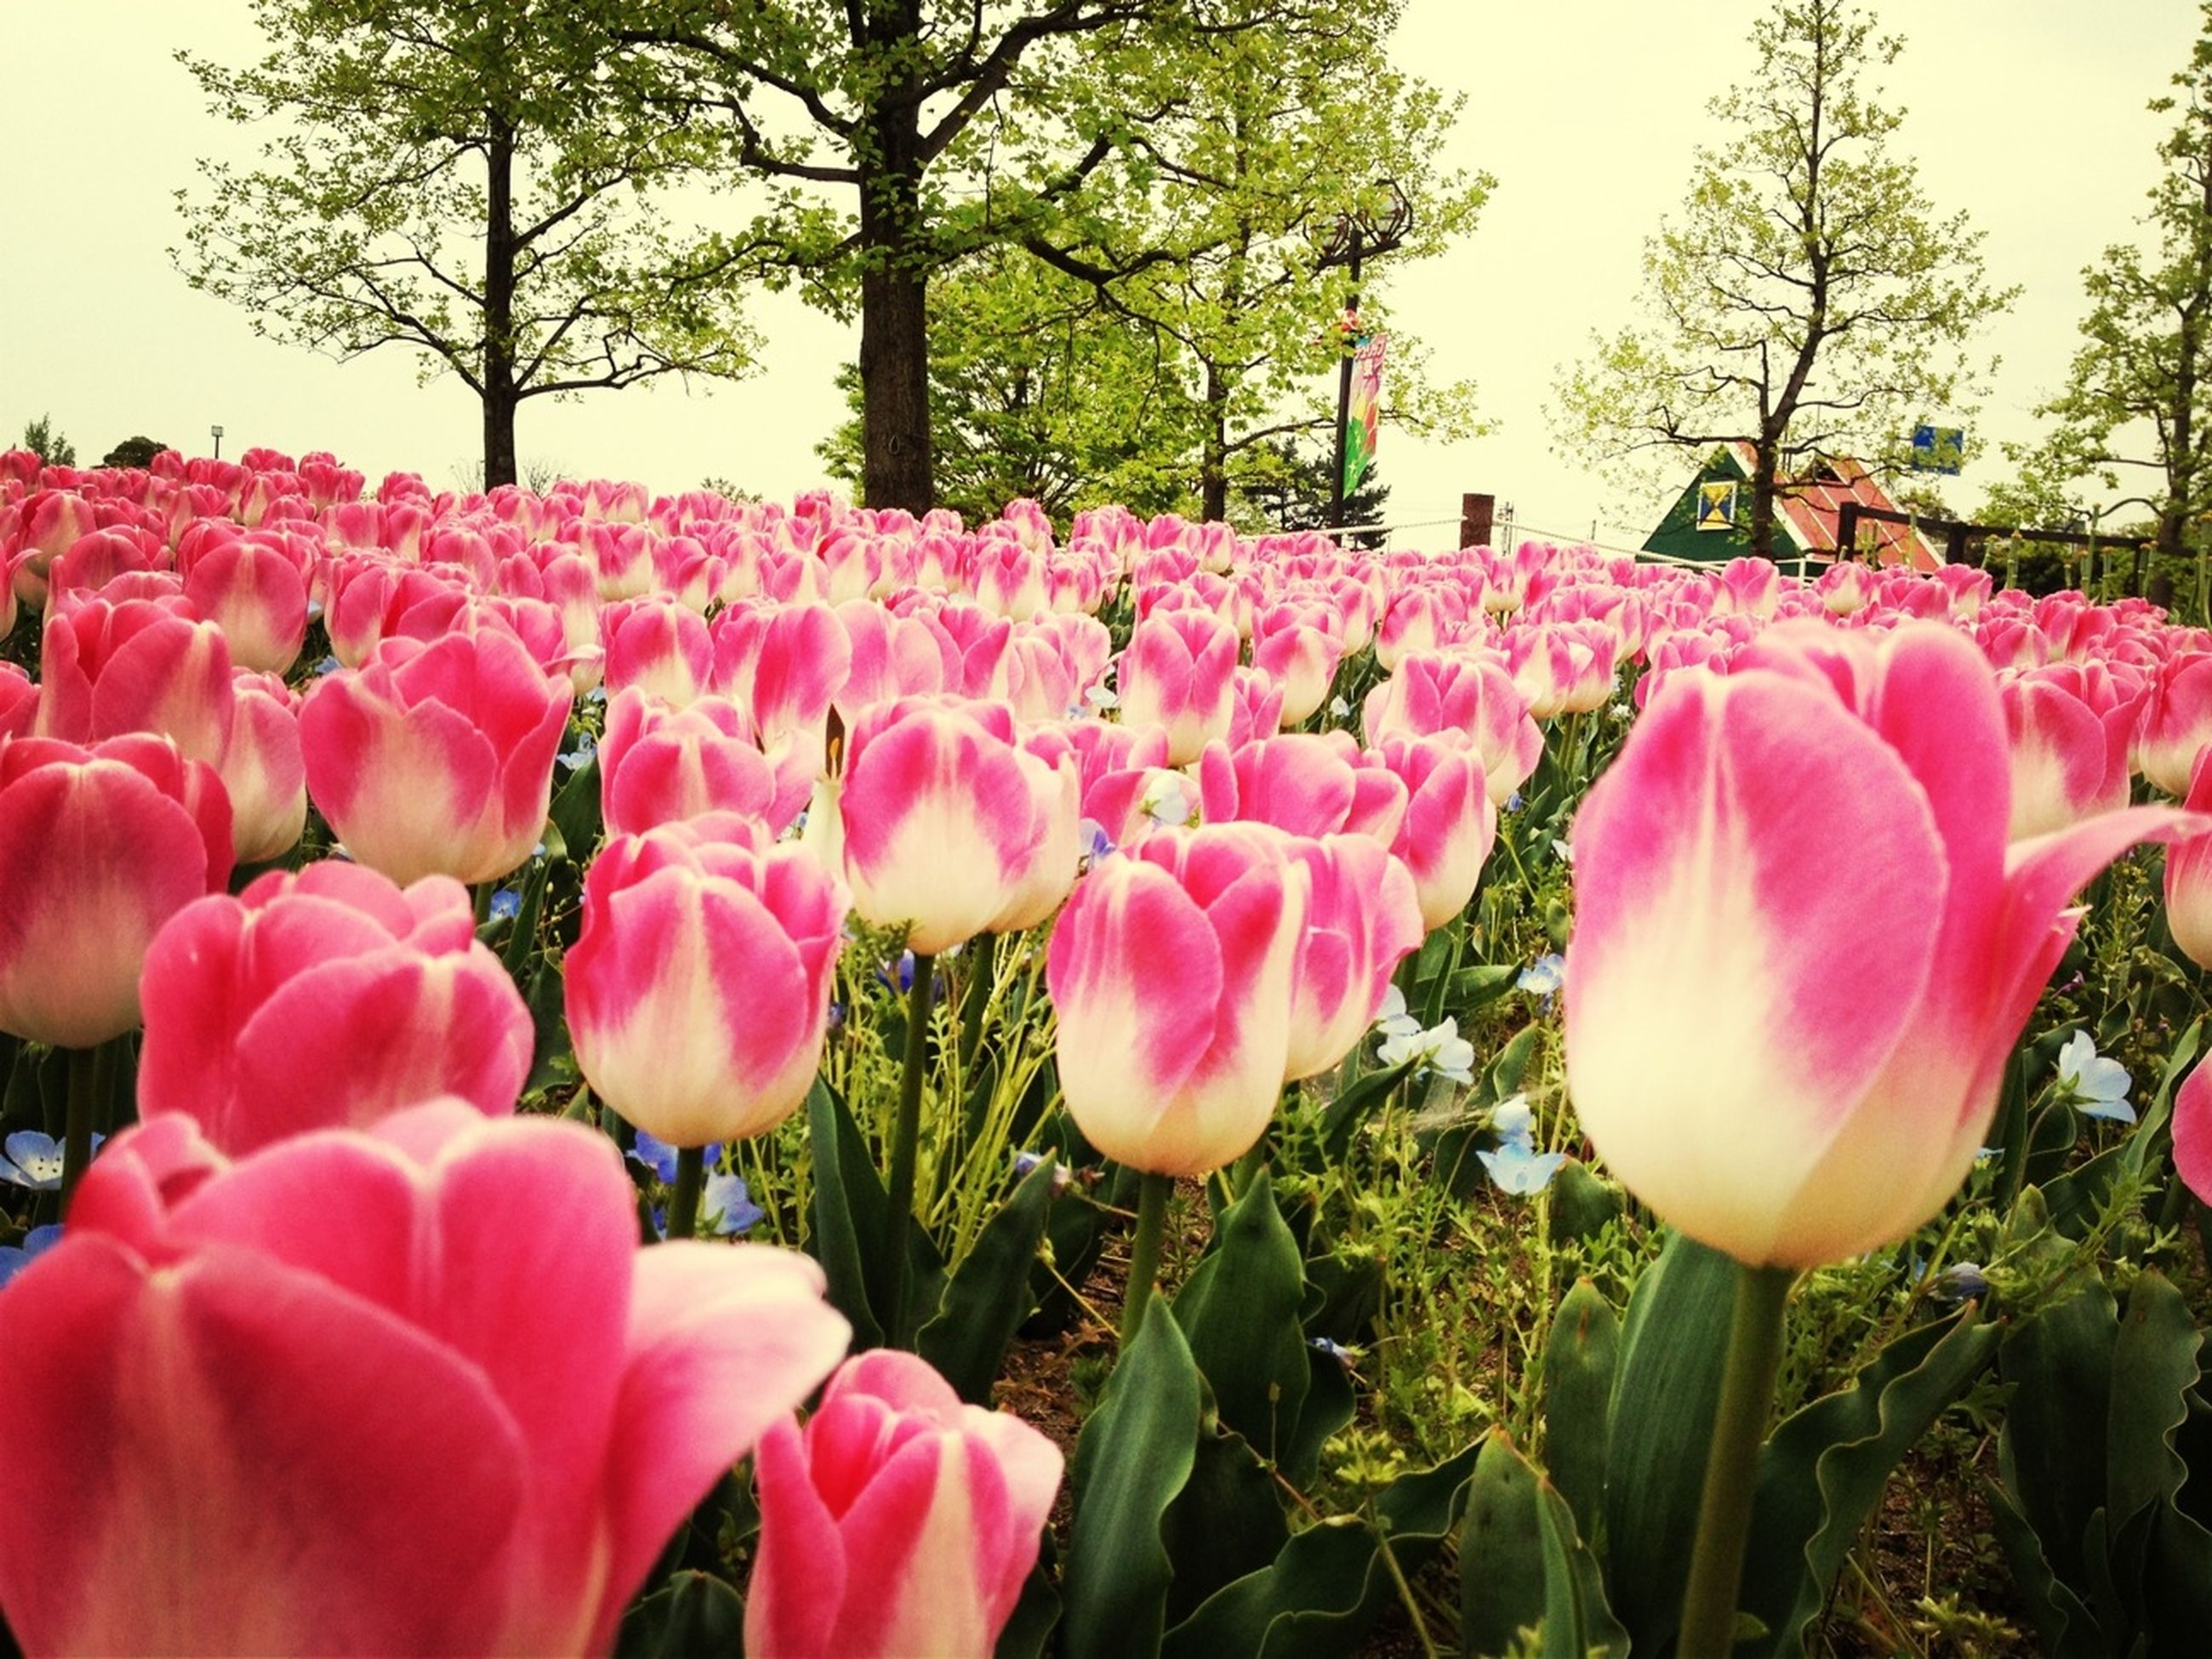 flower, pink color, freshness, petal, tulip, fragility, growth, beauty in nature, flower head, nature, plant, blooming, pink, field, close-up, day, park - man made space, blossom, outdoors, no people